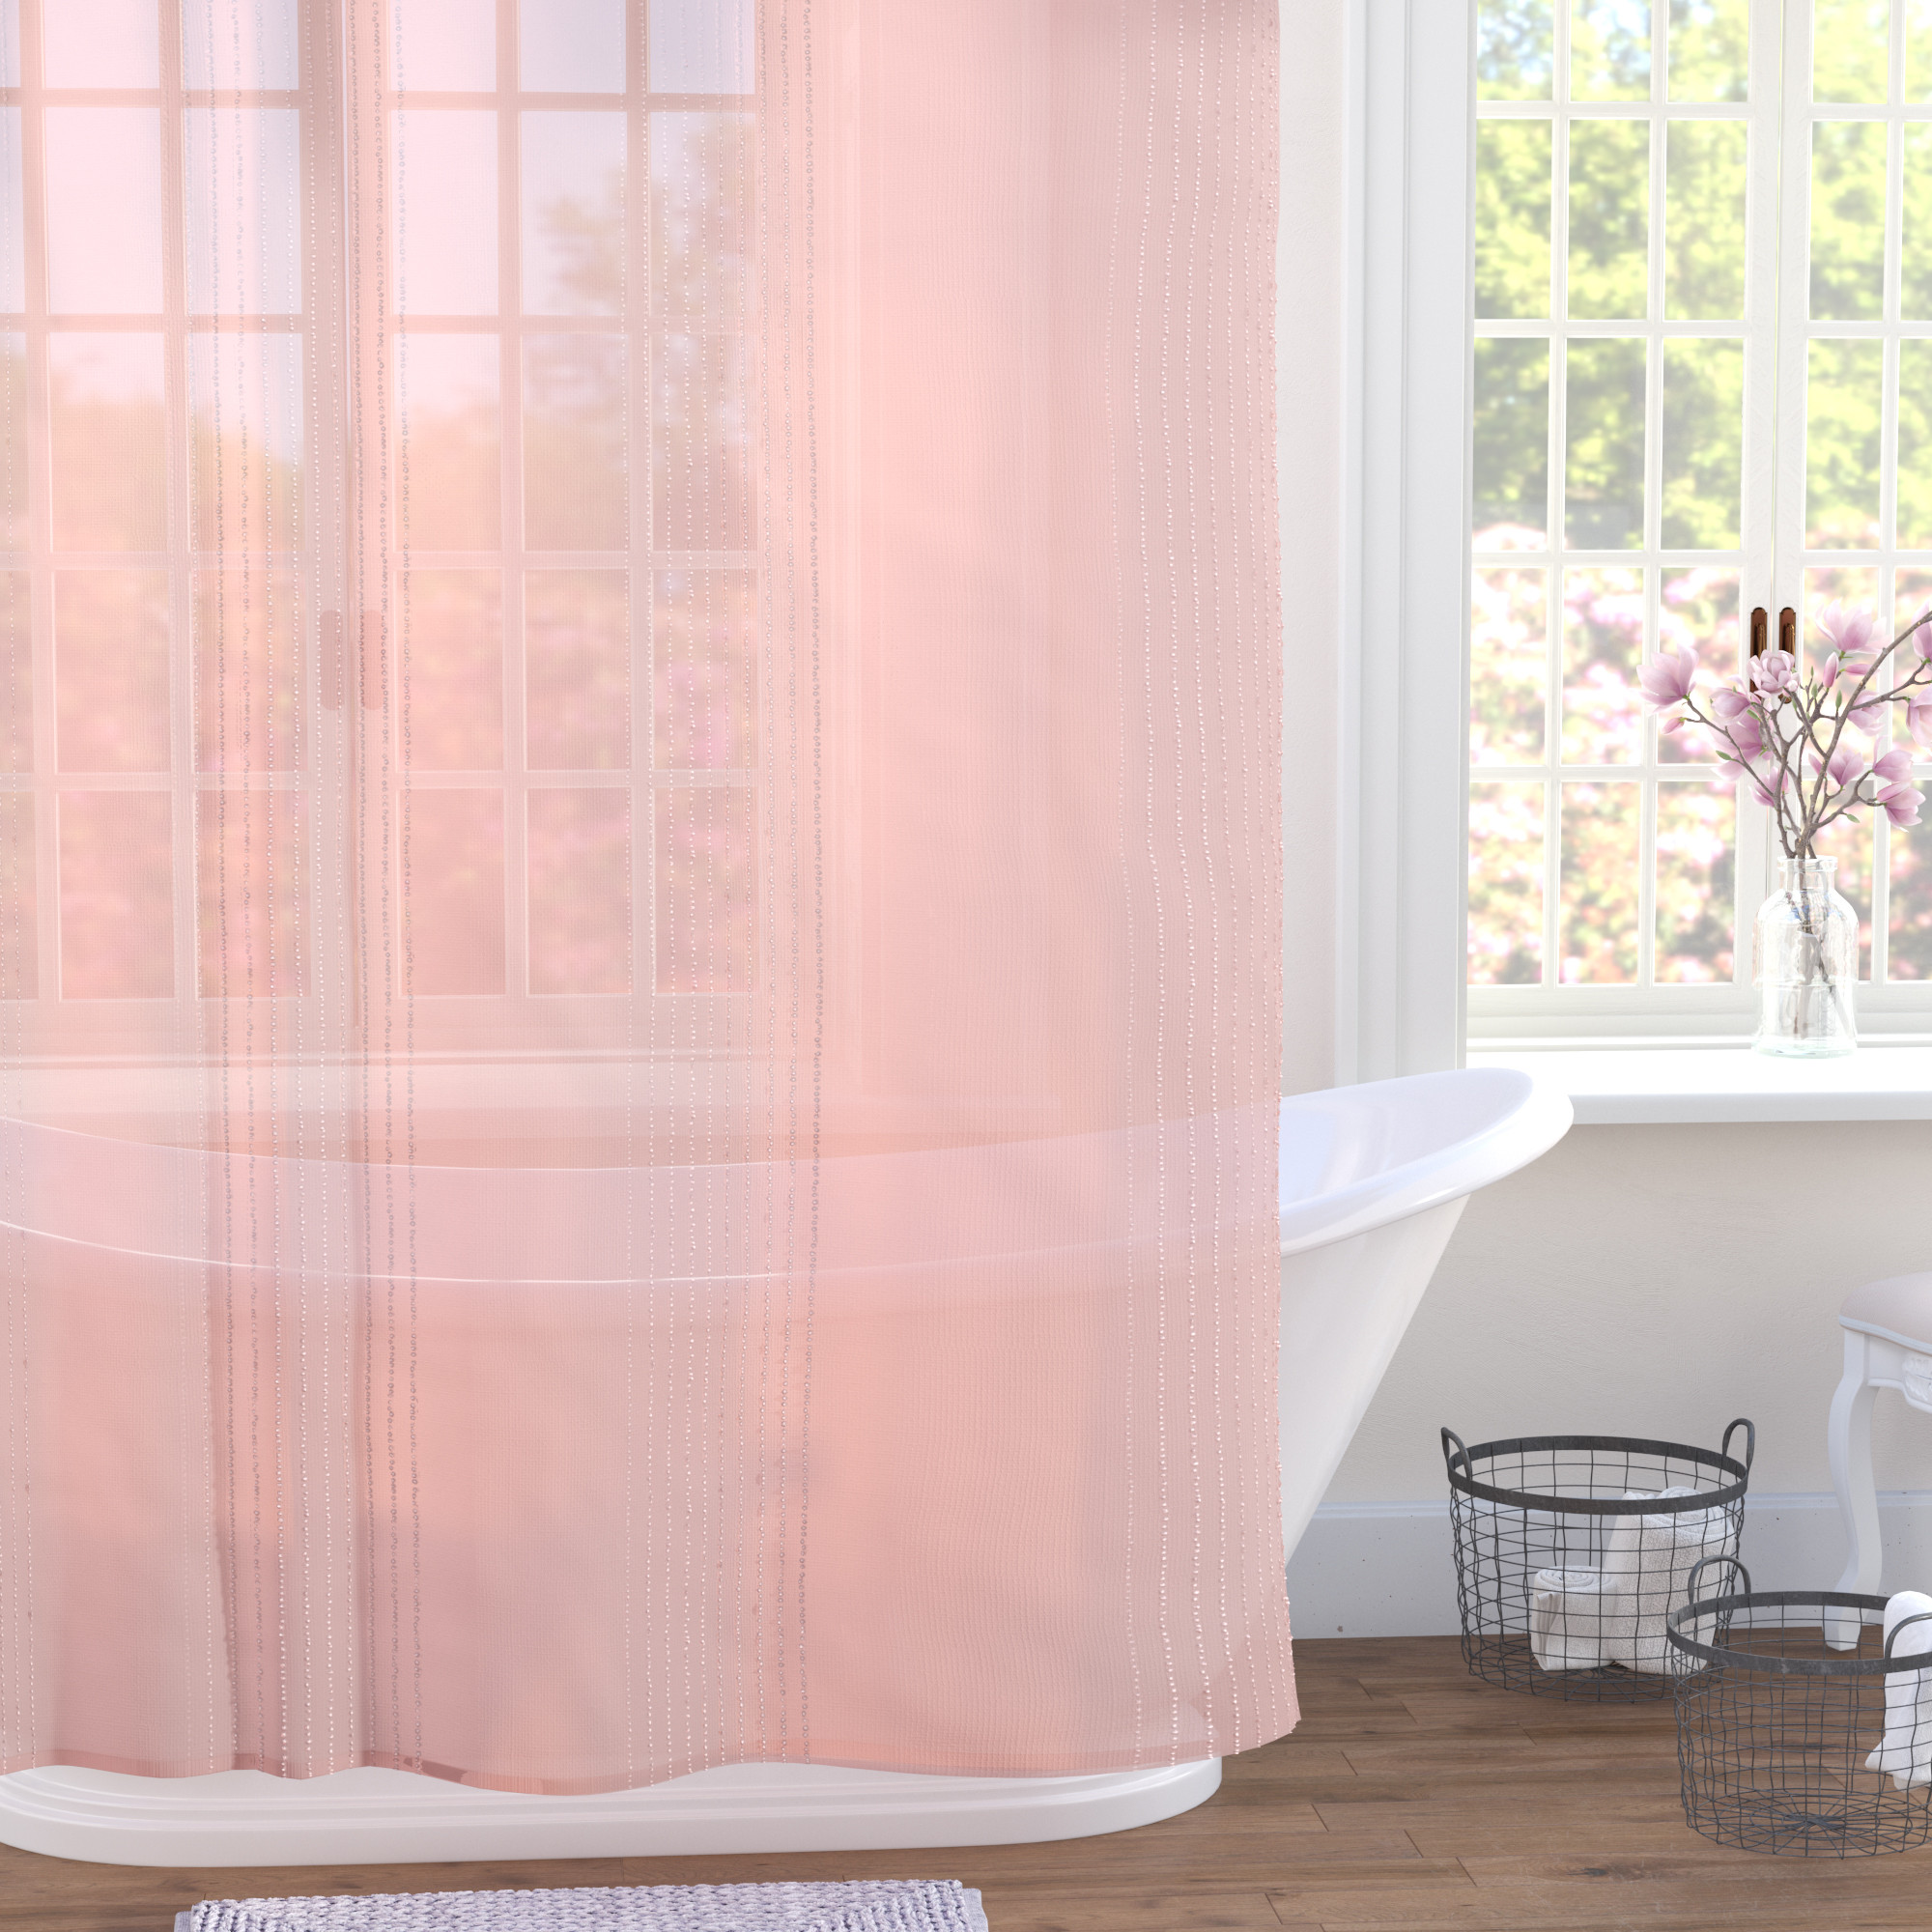 In this image I did lighting and rendering and created the material and model for the shower curtain.